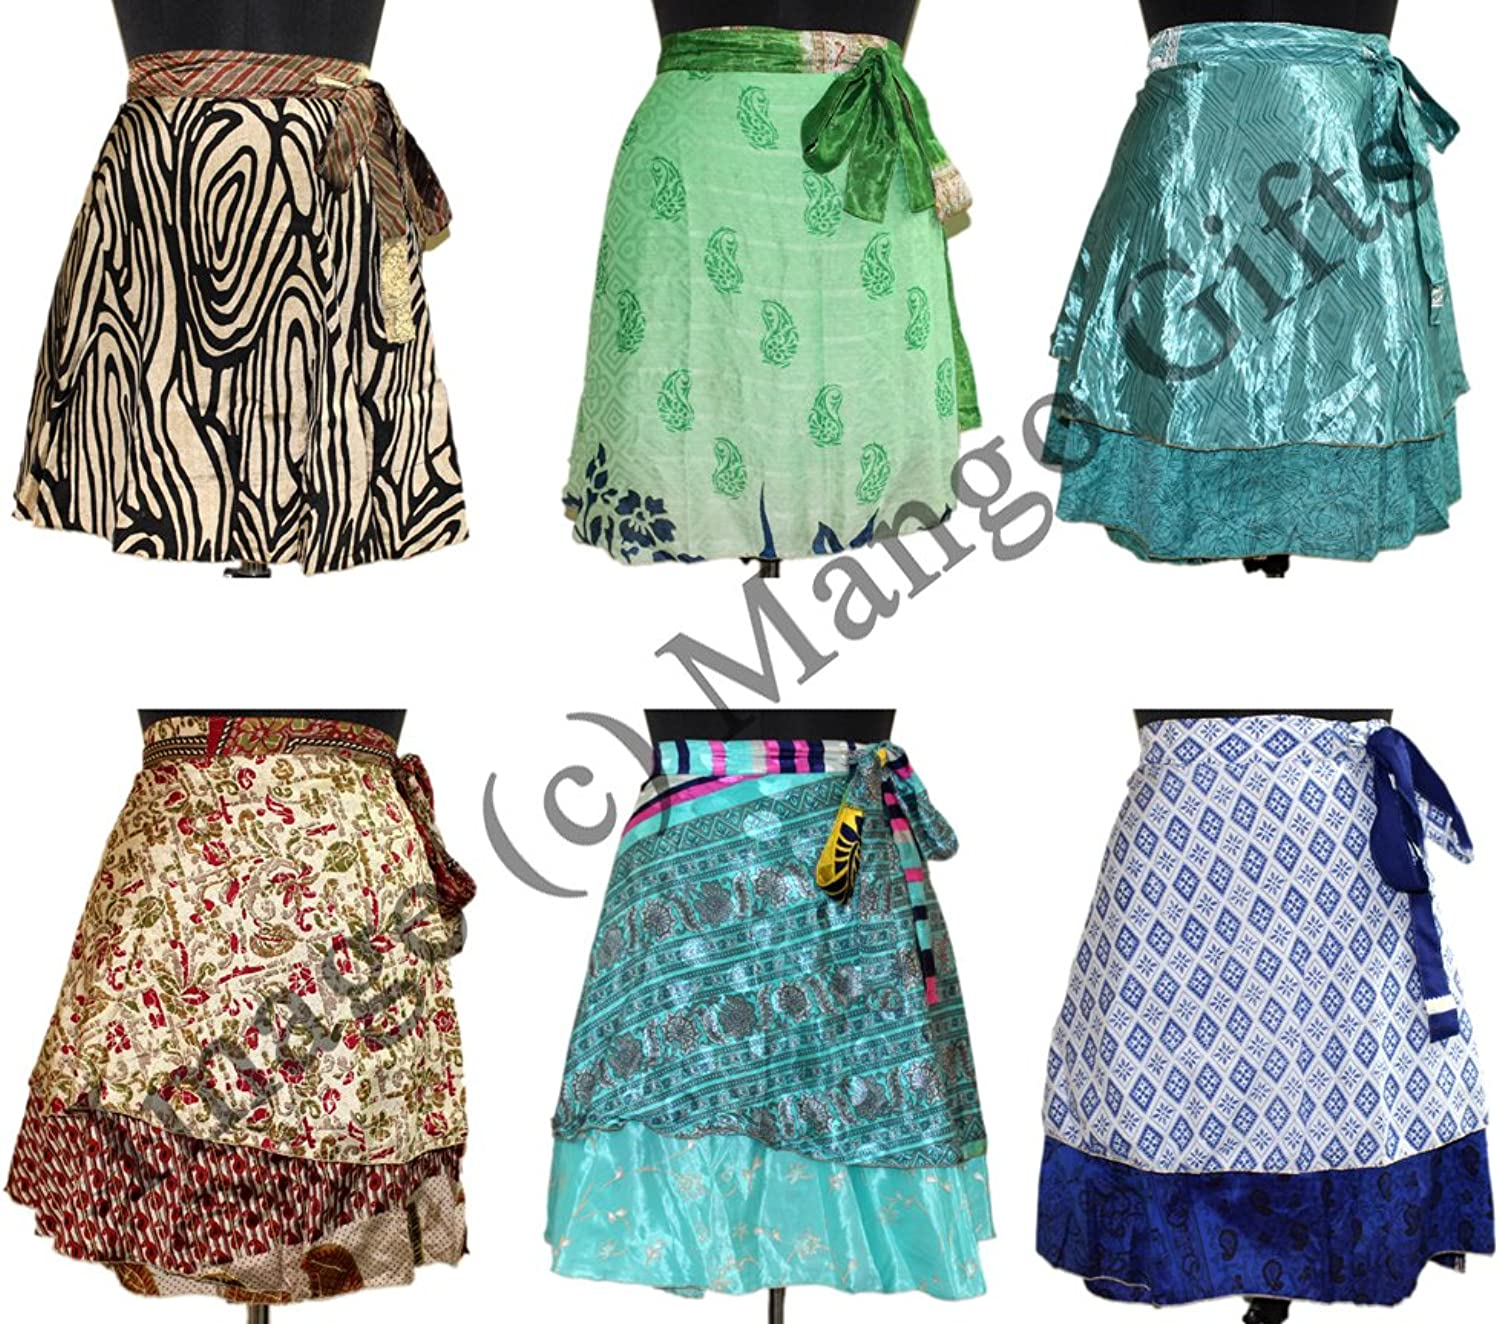 Wrap Around Skirt Wholesale lot of 10 Pcs Printed Reversible Two Layer By Mango Gifts